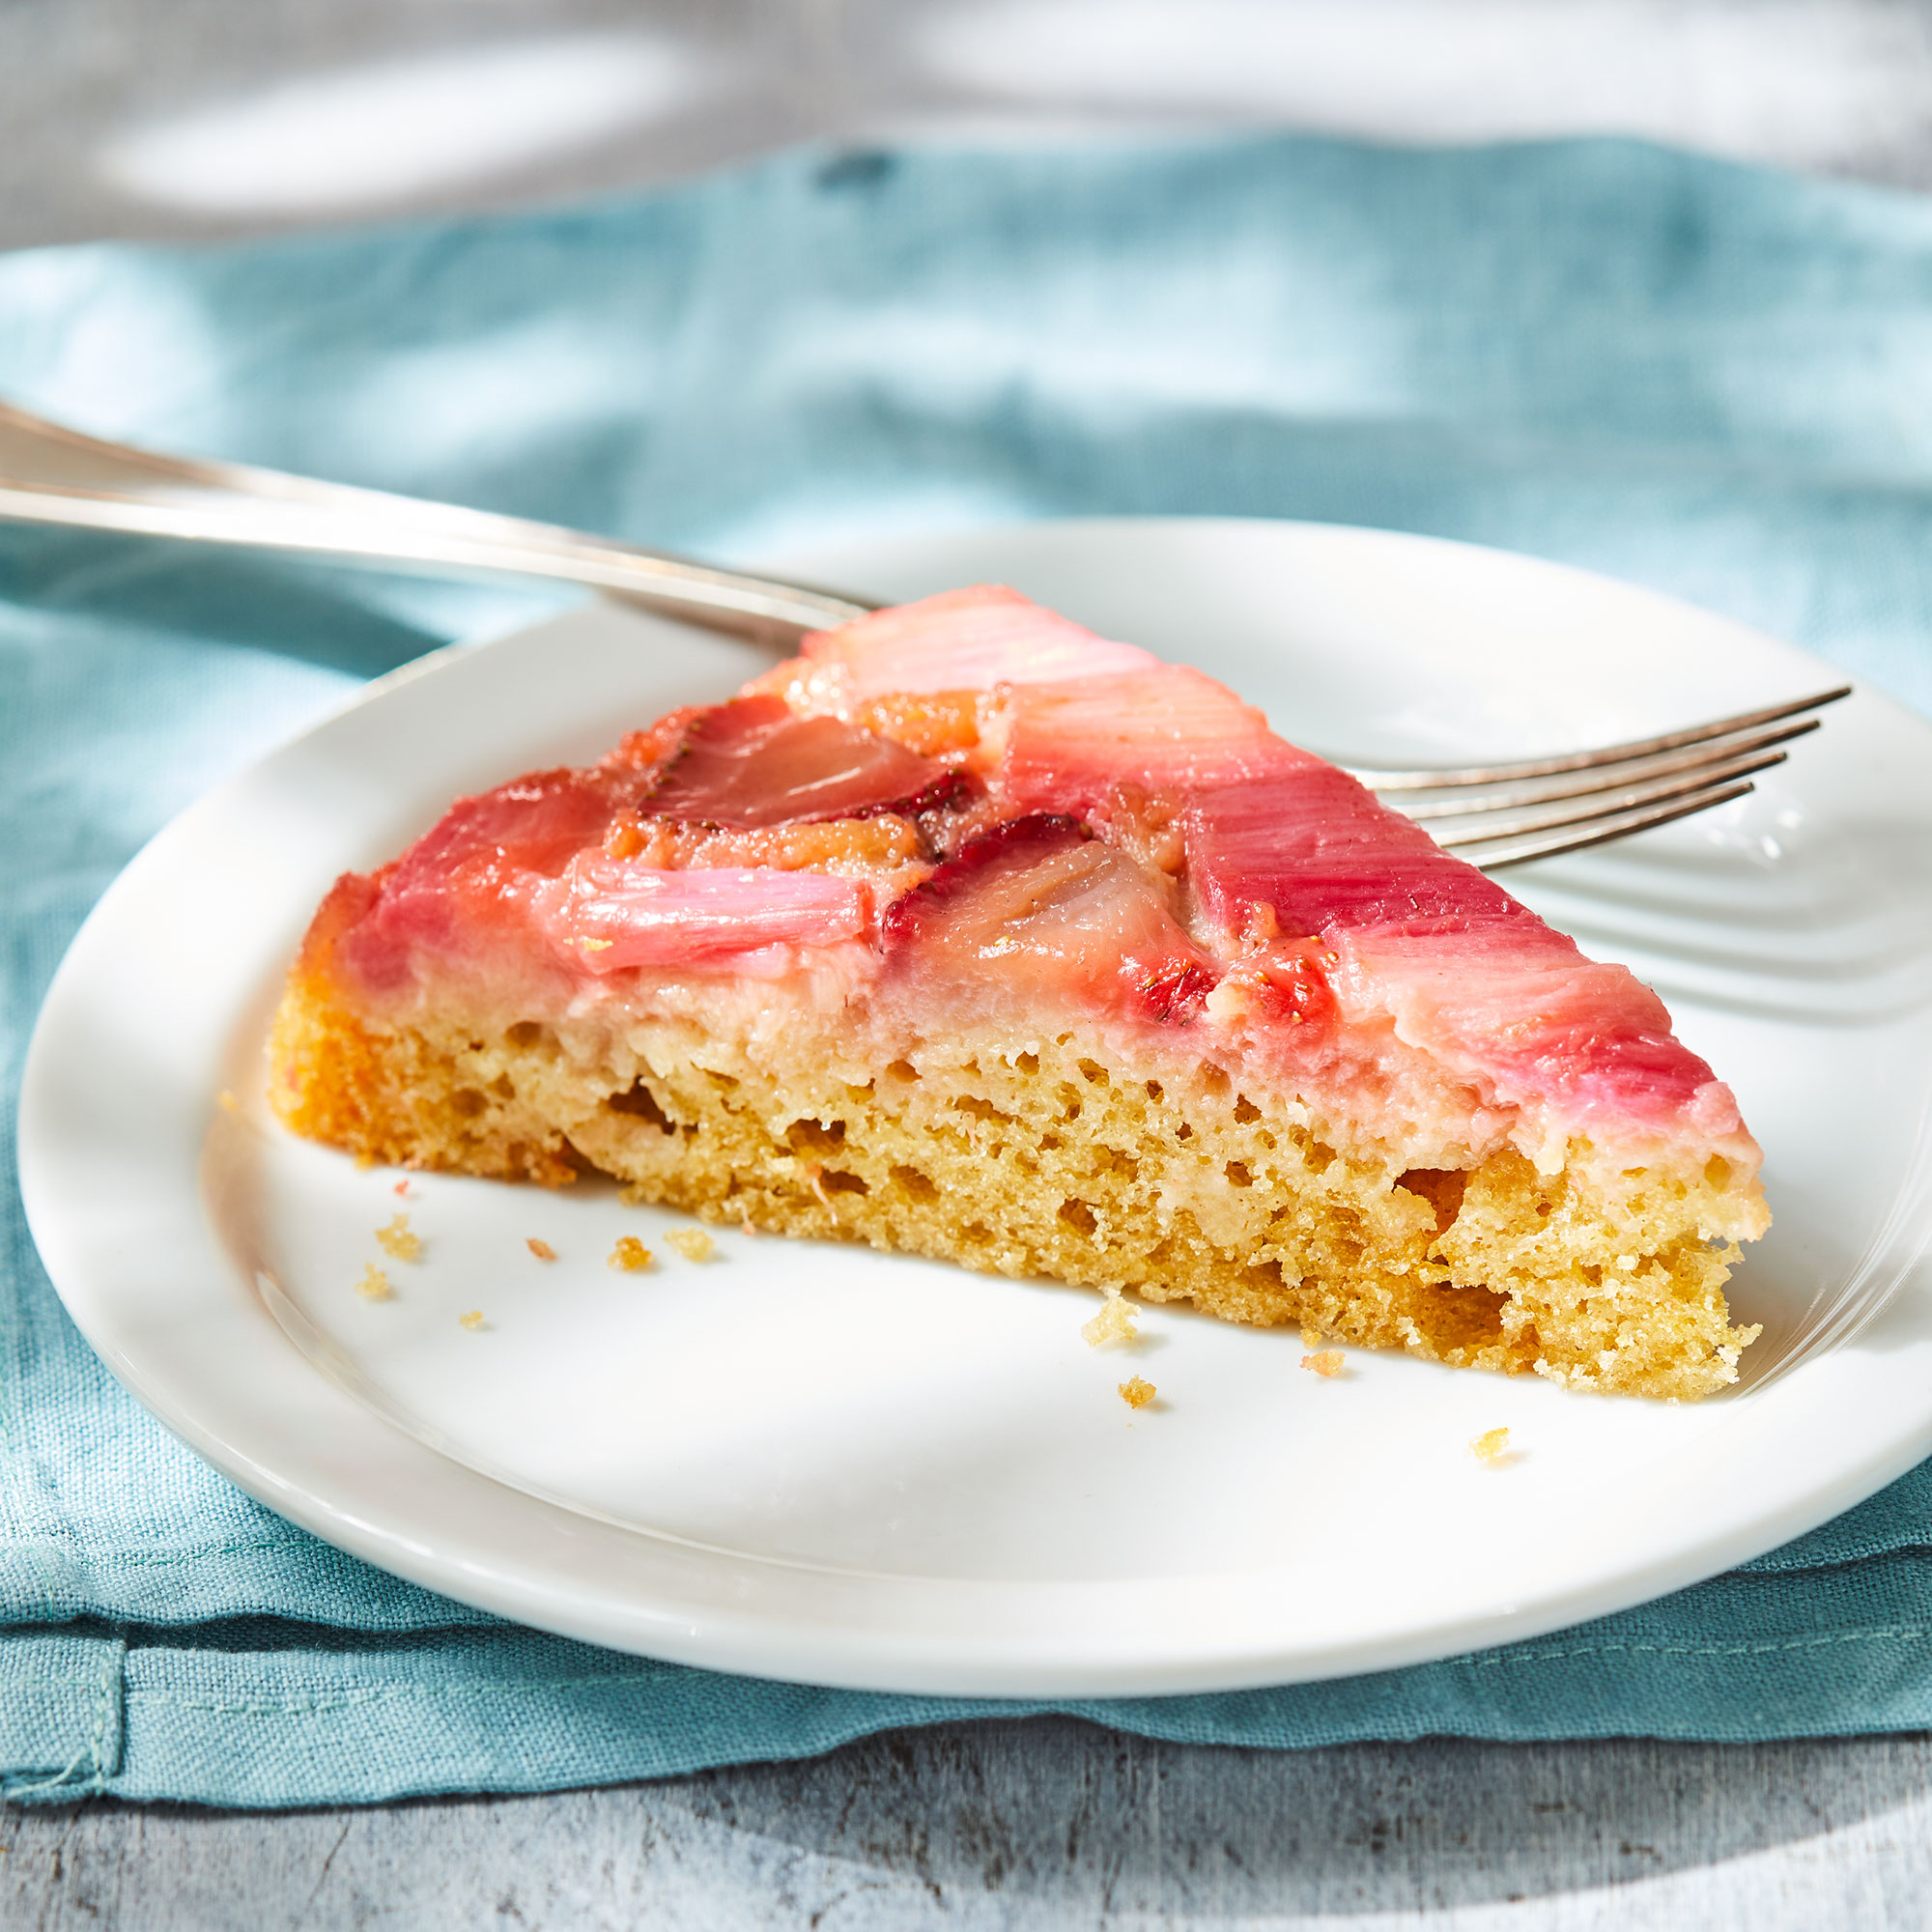 Strawberry-Rhubarb Upside-Down Cake with Yogurt